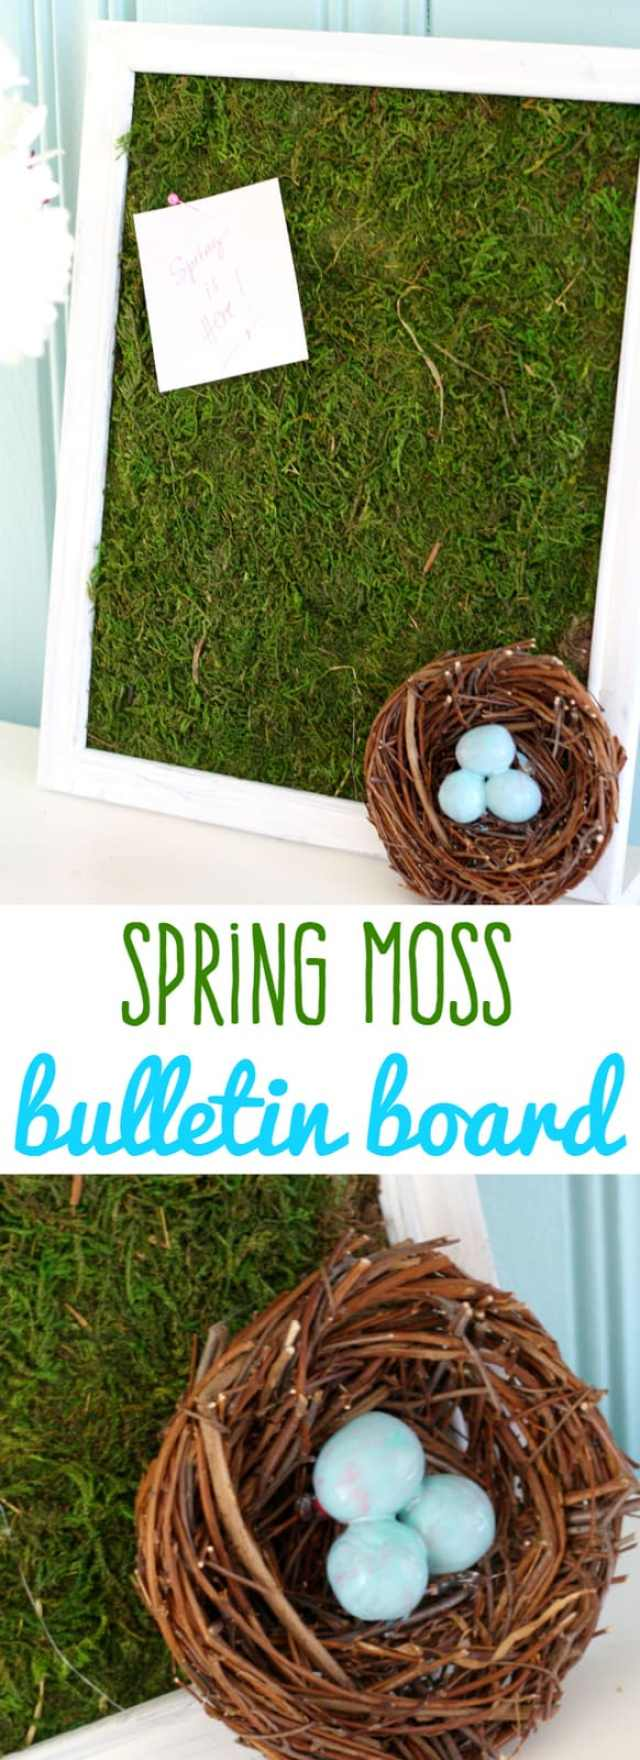 Make a very fresh and fun spring moss bulletin board! Easy and so cute for this time of year! #moss #spring